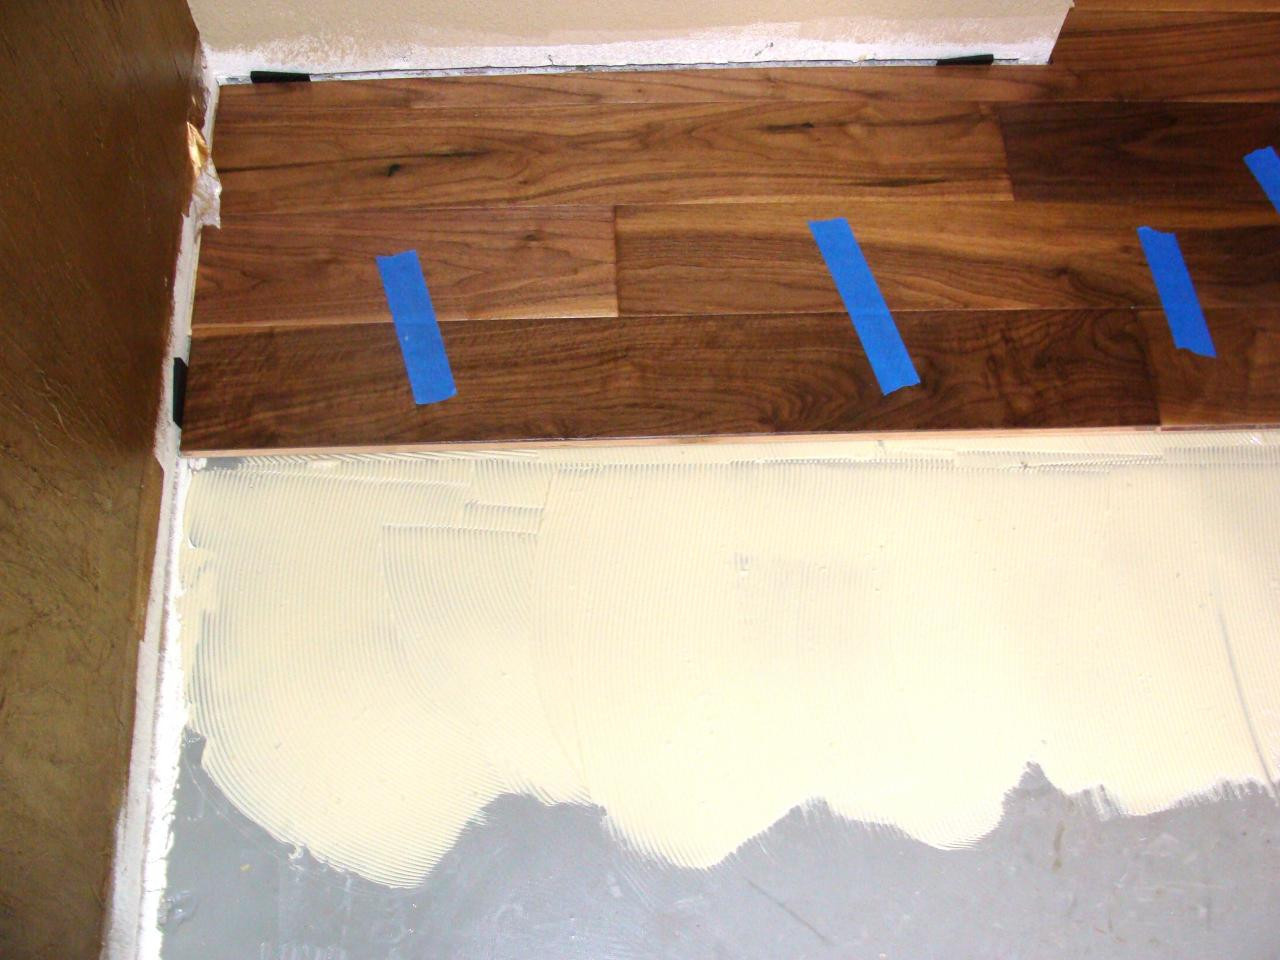 installing glue down hardwood floors on concrete of how to remove tile glue from concrete new afm safecoat 3 in 1 in how to remove tile glue from concrete beautiful installing hardwood flooring over concrete how tos